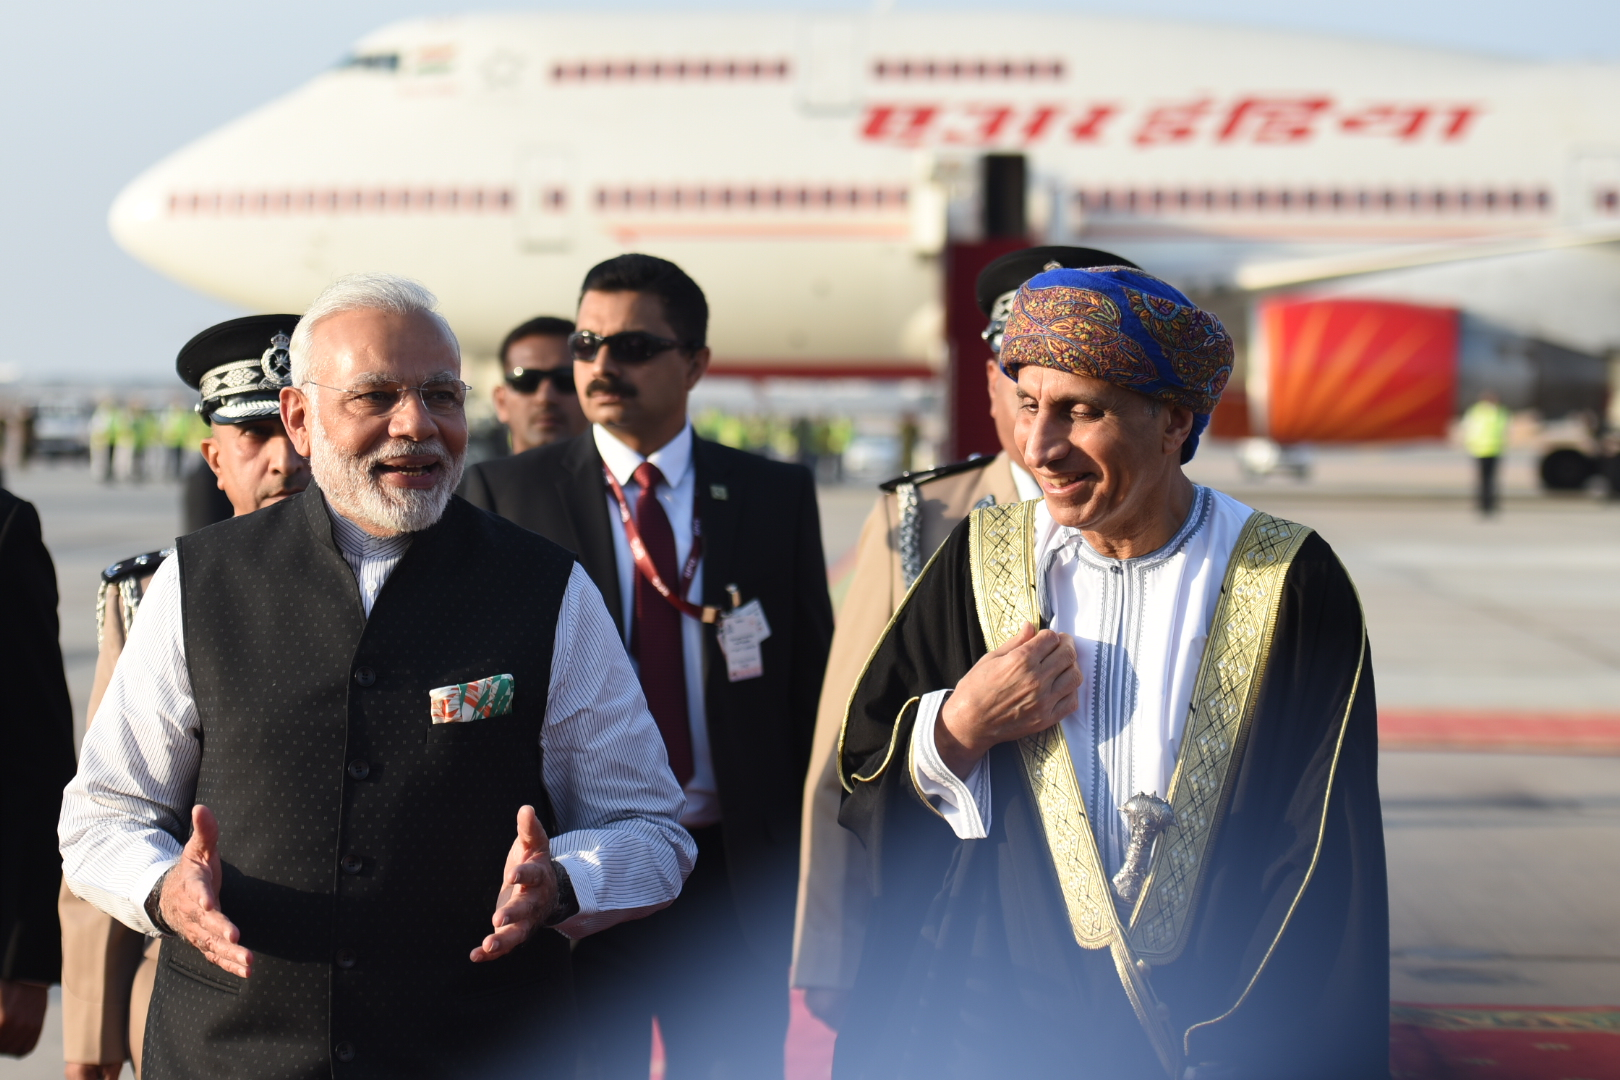 PM Narendra Modi in Oman: Business meet with CEOs on agenda today